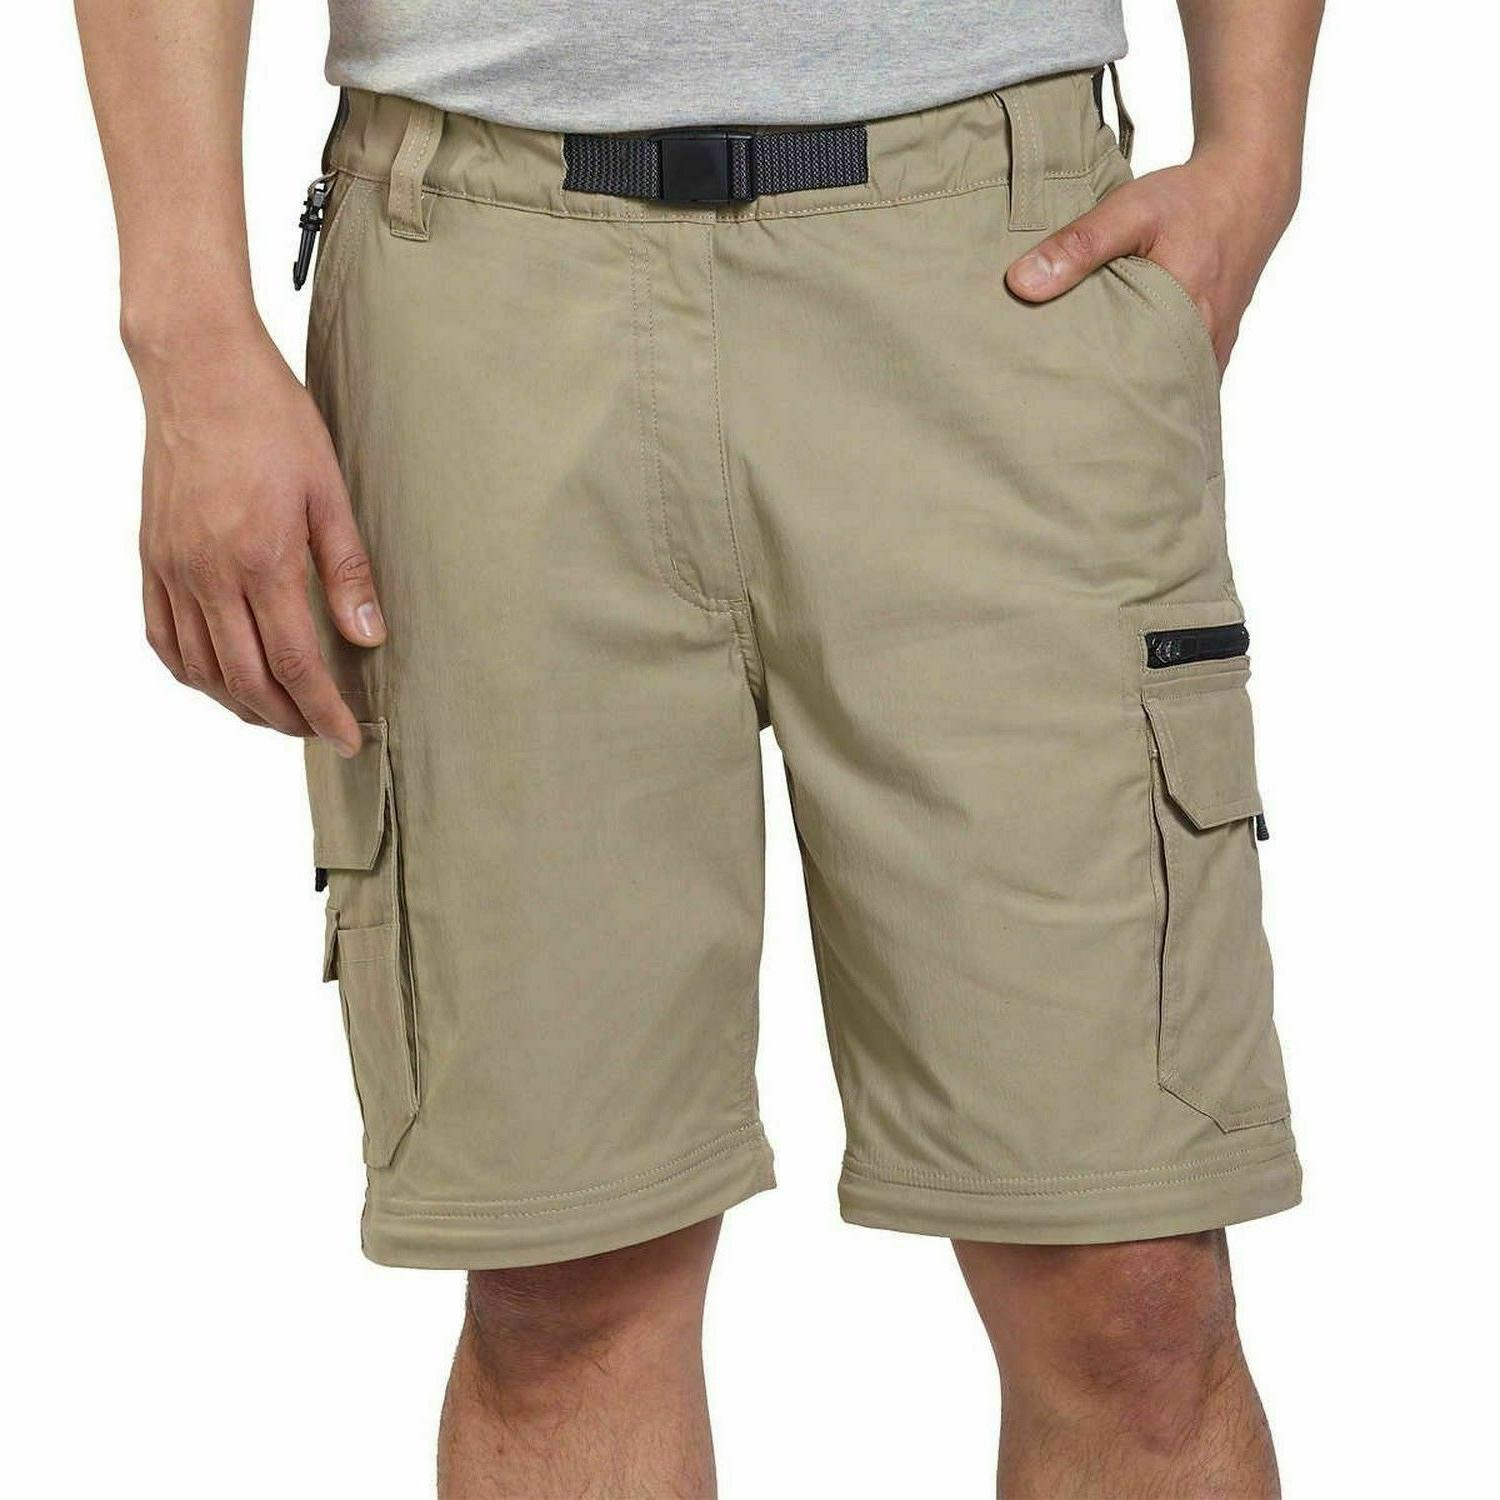 NEW Men's Hiking Convertible Cargo Stretch Pants, Sand, Small